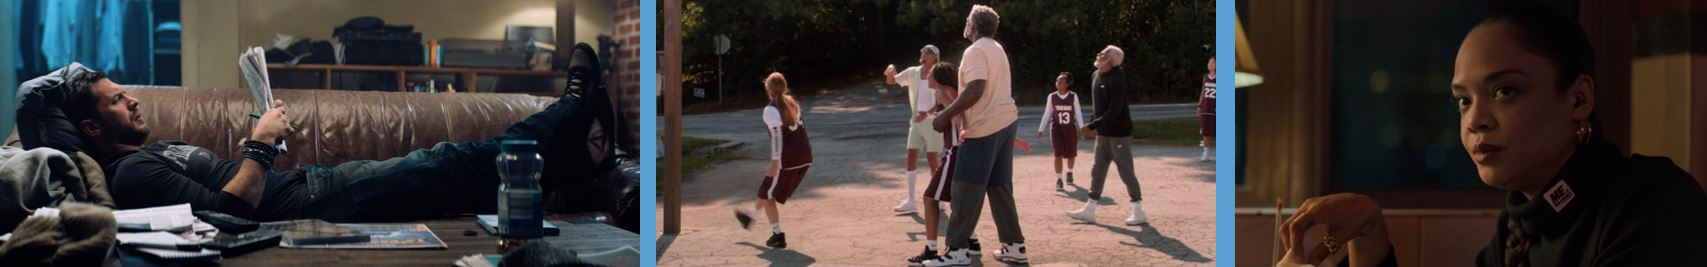 product placement concave brand tracking branded entertainment brand integration marketing valuation venom creed 2 II uncle drew Reebok shoes